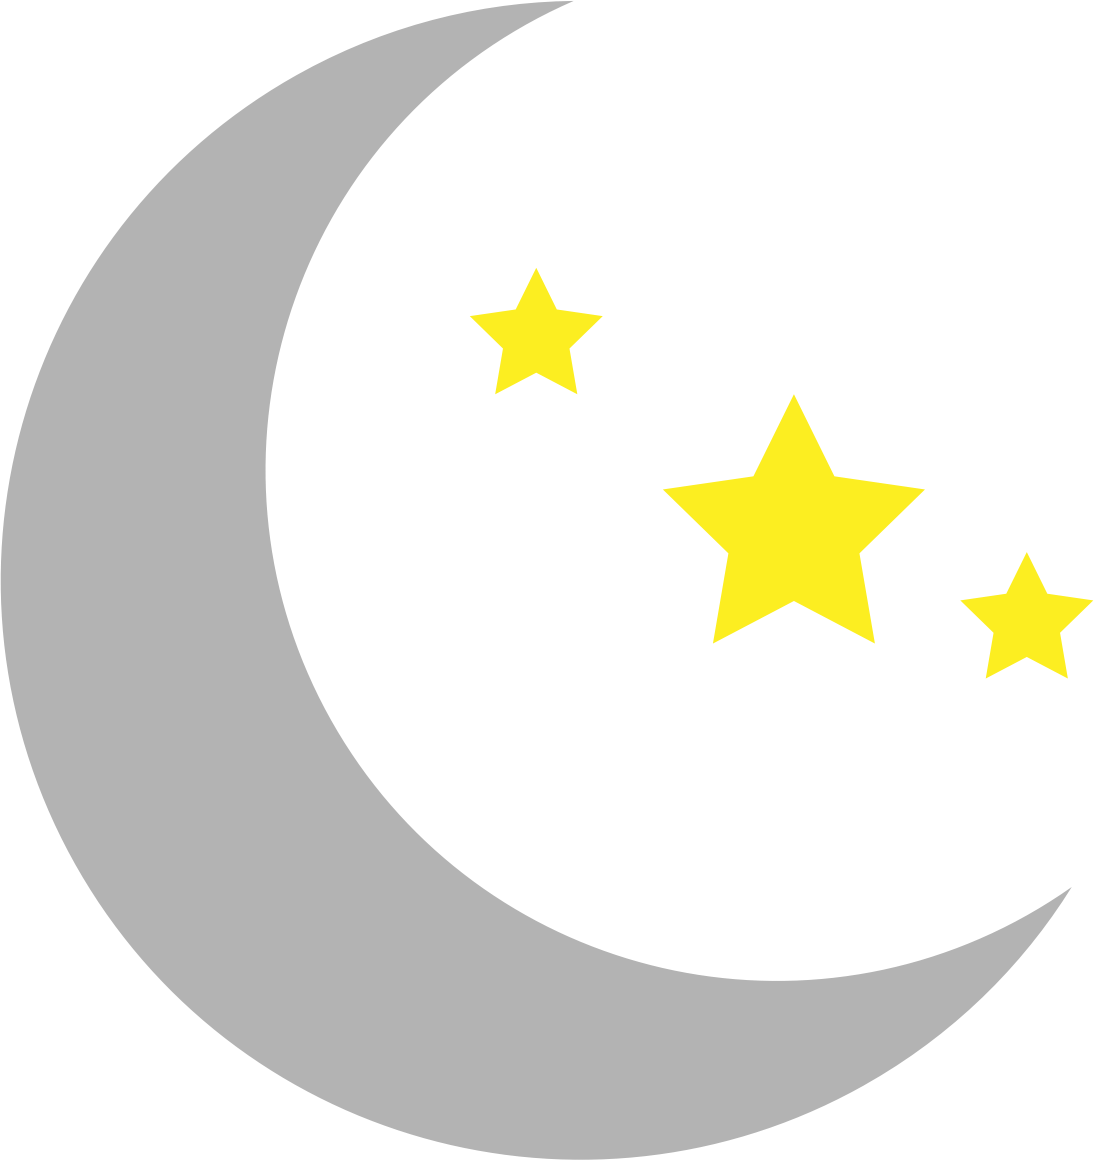 1094x1160 Clipart Moon And Stars